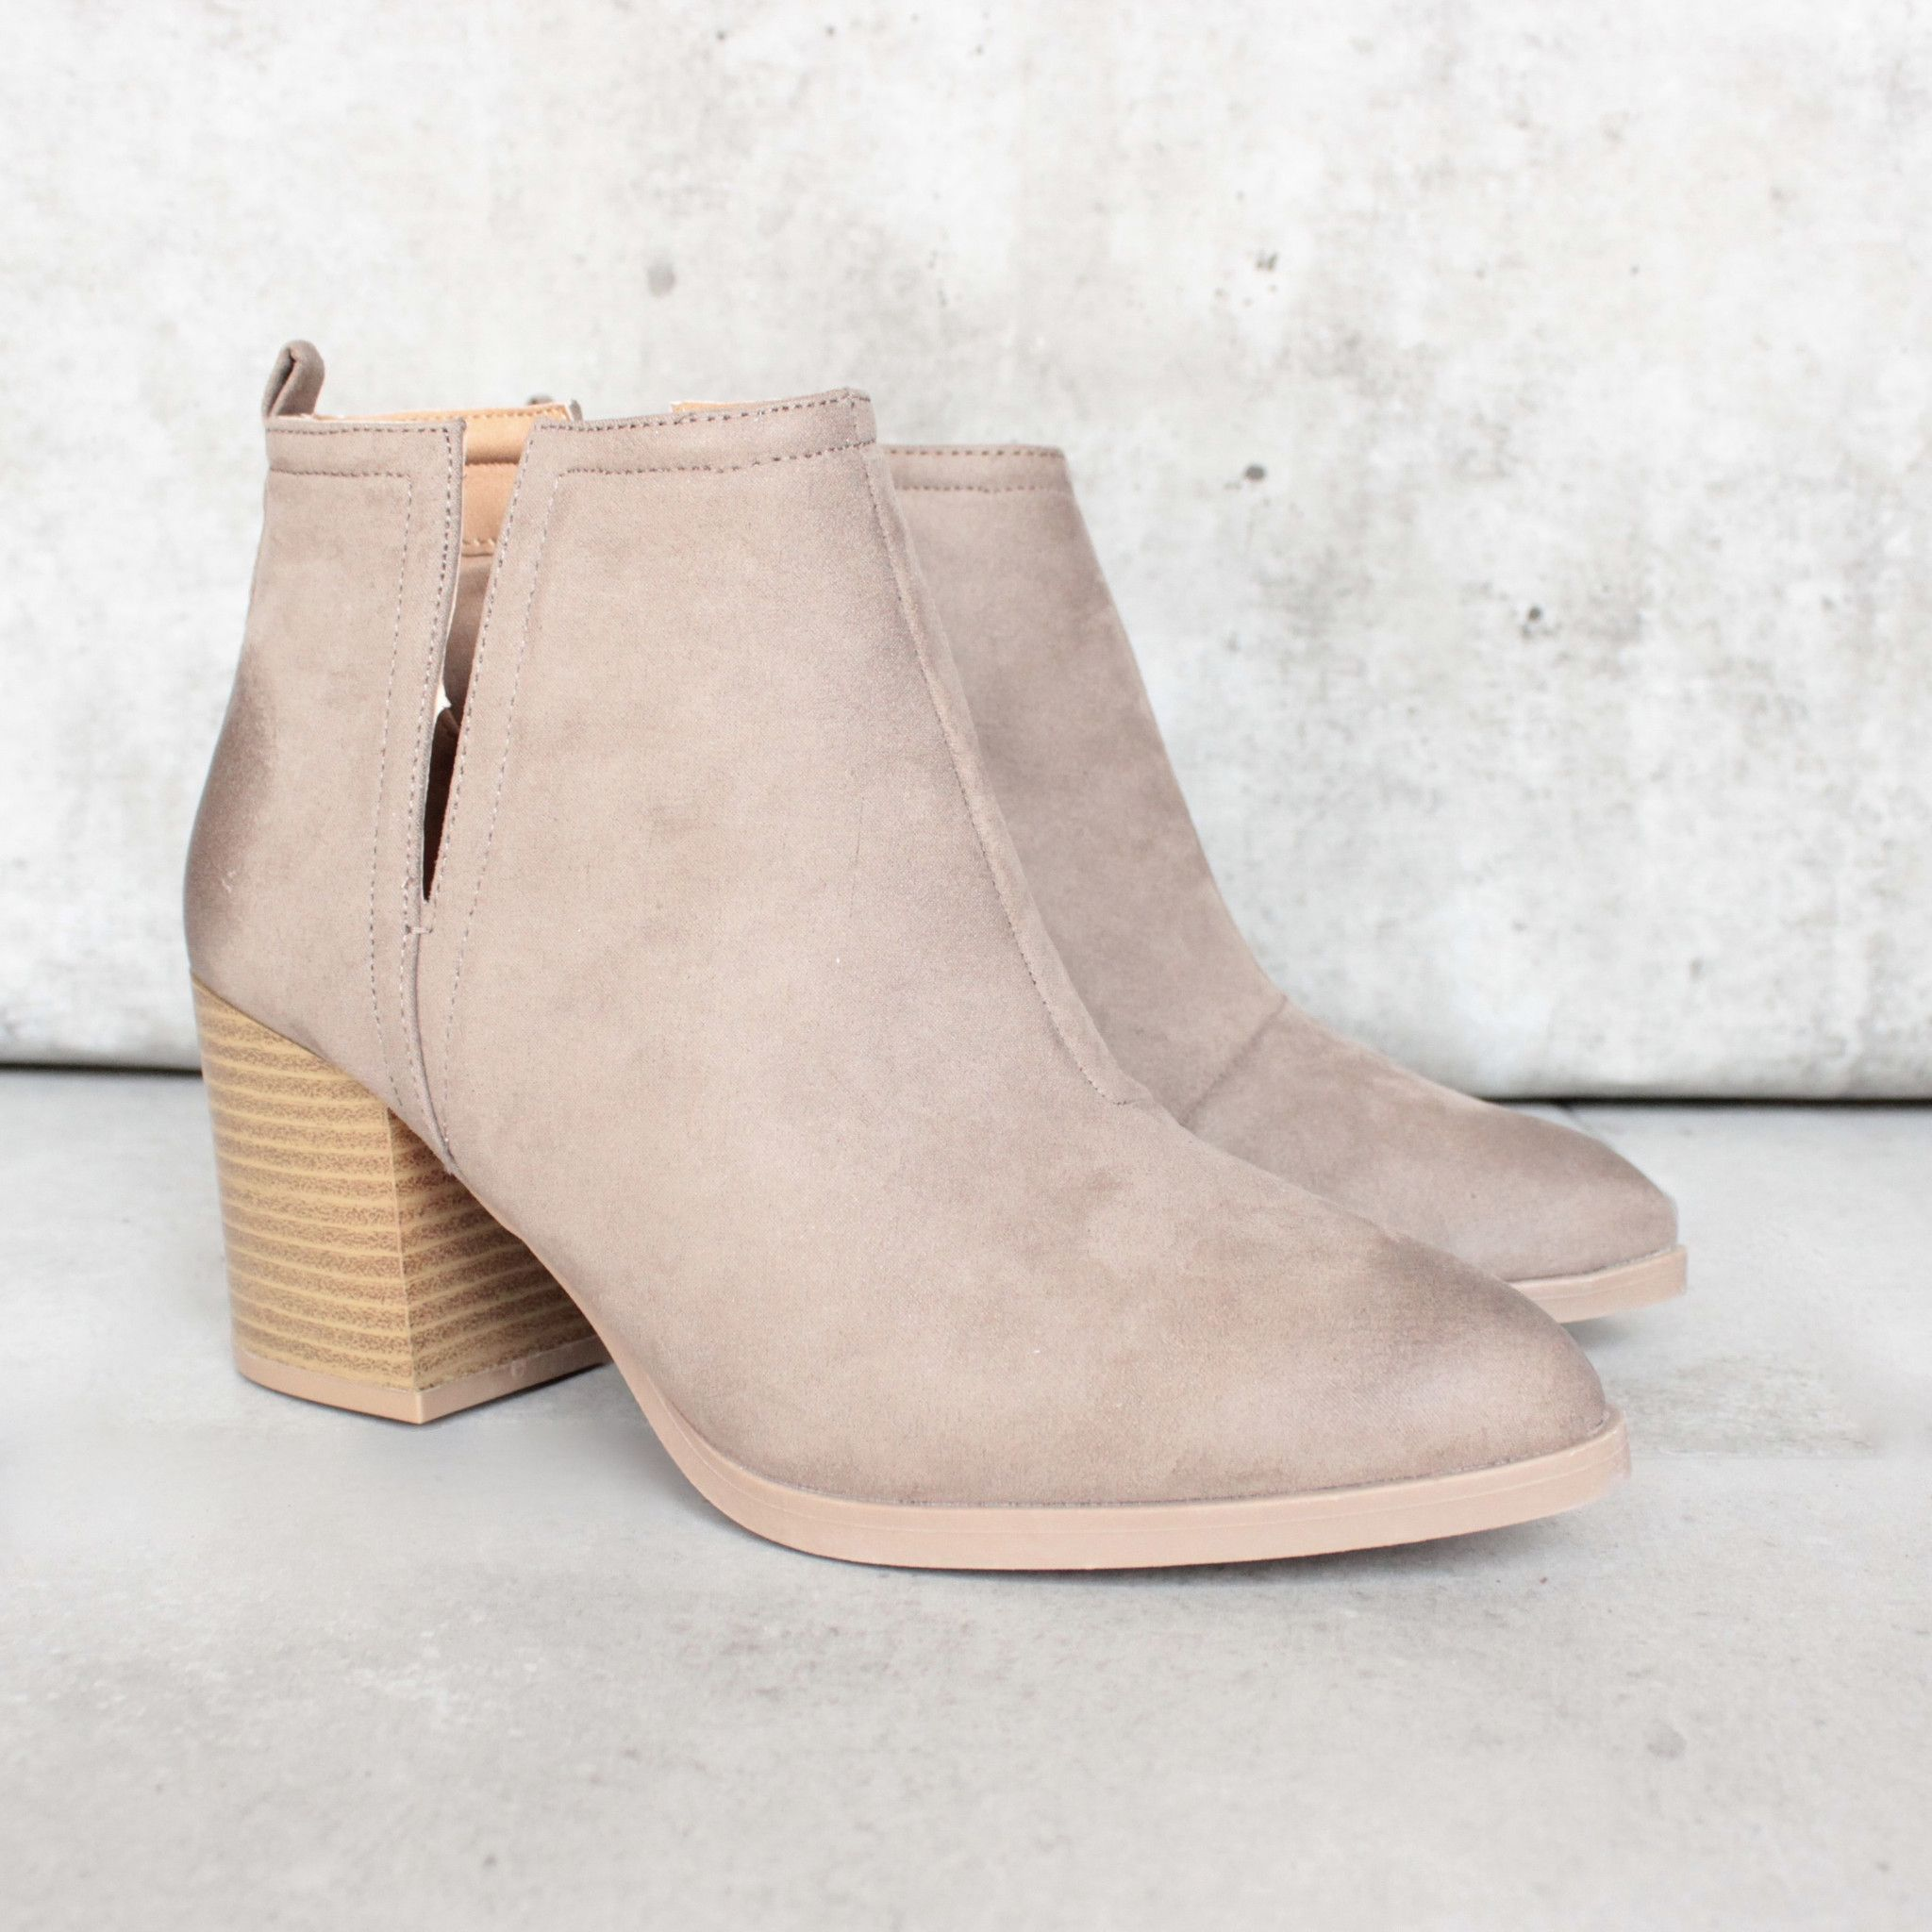 b3db31baf193 Side slit chelsea ankle booties - more colors | { shophearts.com ...